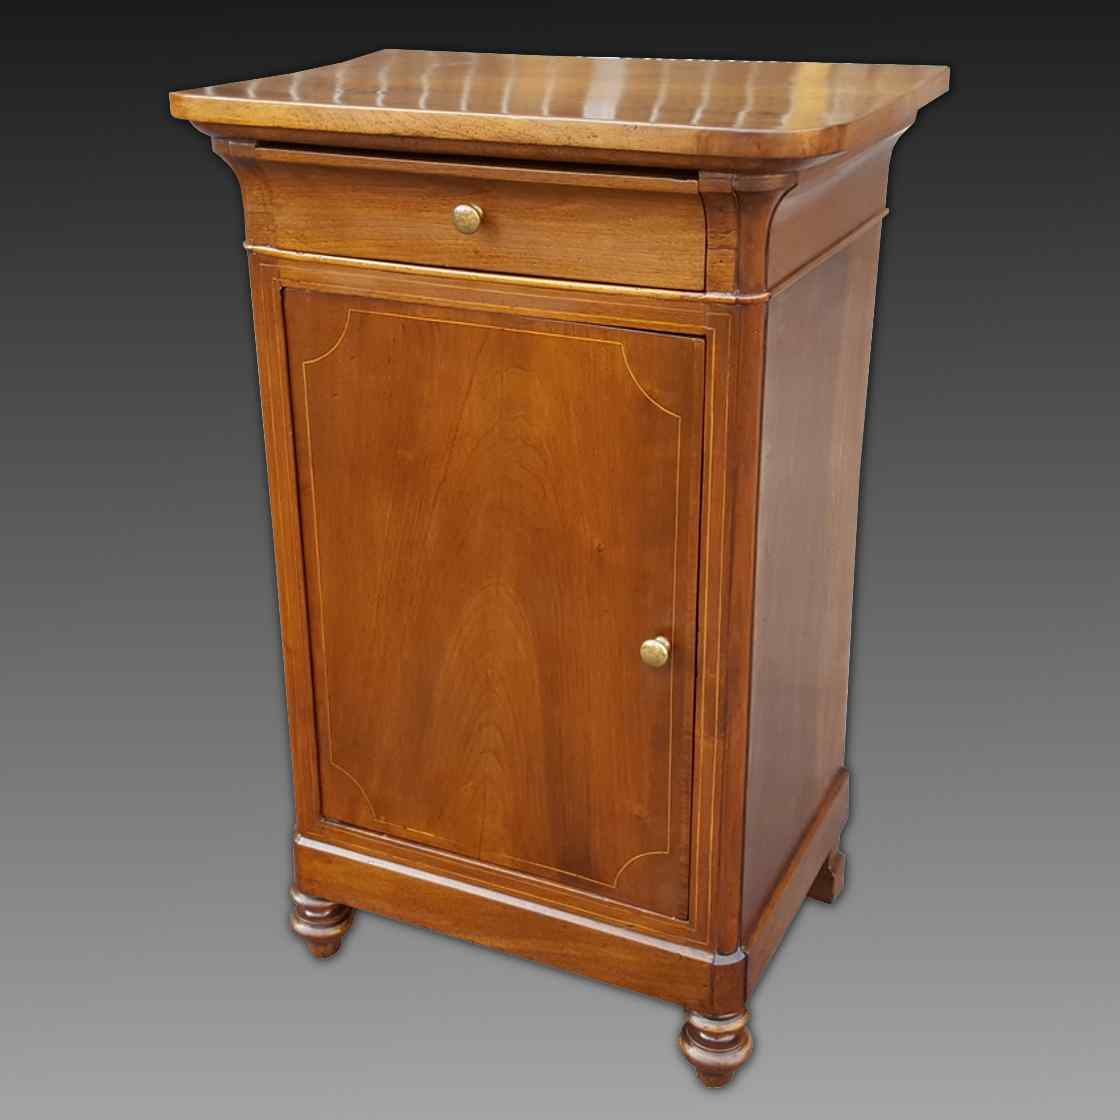 Antique Louis Philippe Bedside table in walnut - Italy 19th